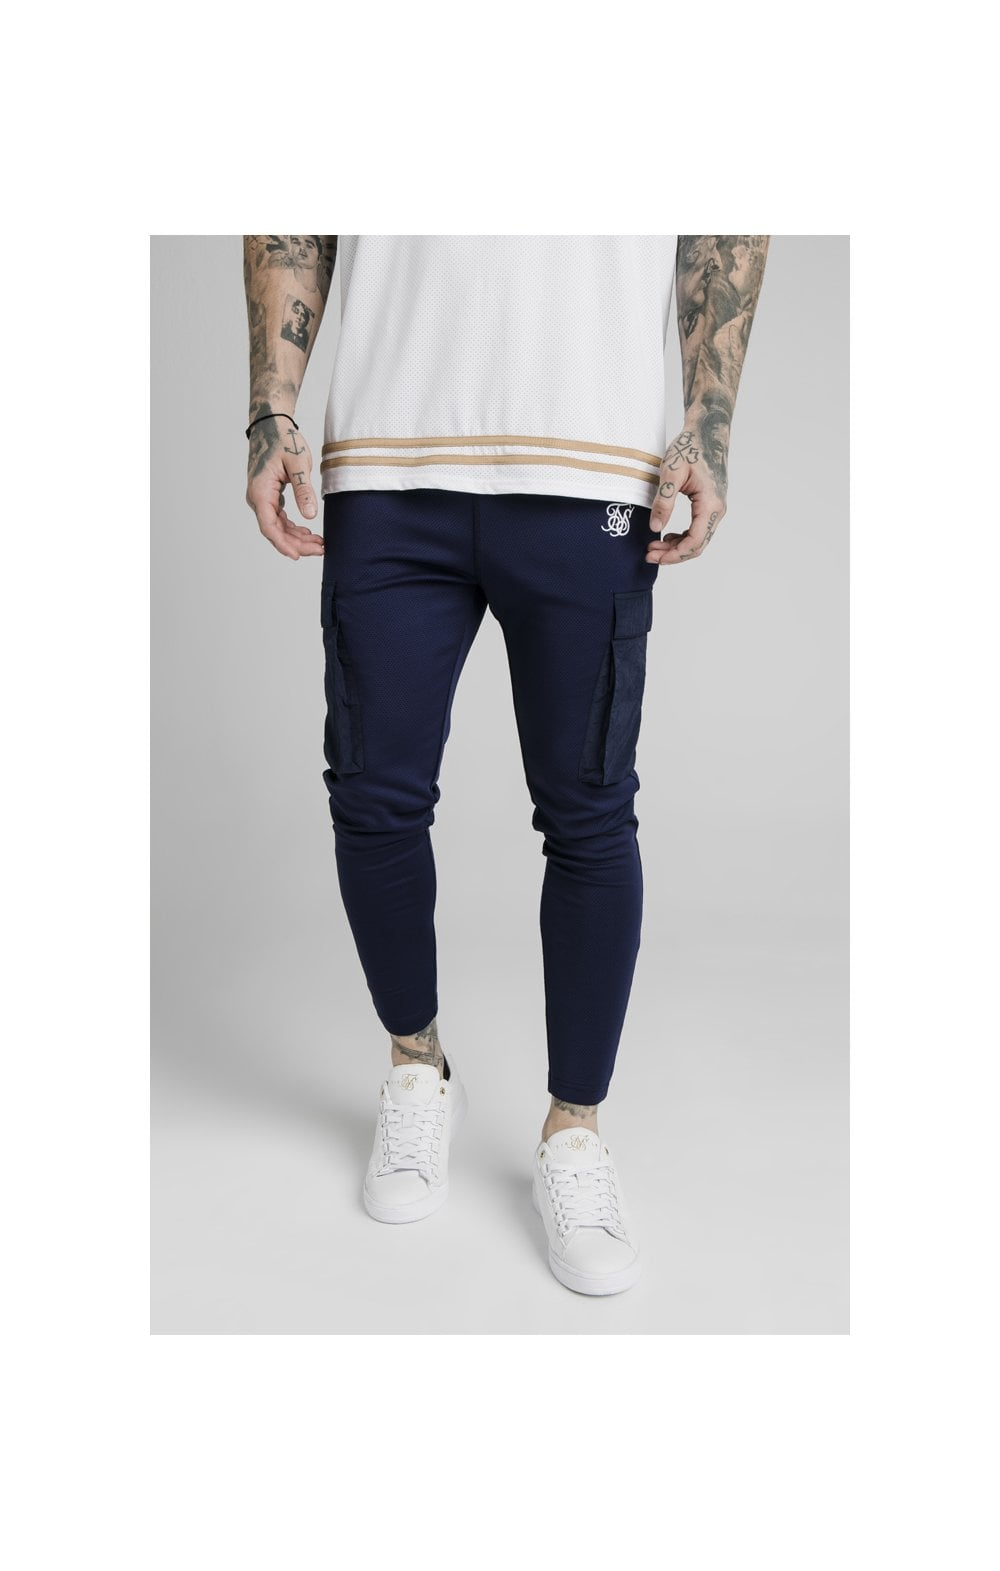 Load image into Gallery viewer, SikSilk Crushed Nylon Cargo Pants - Navy (1)